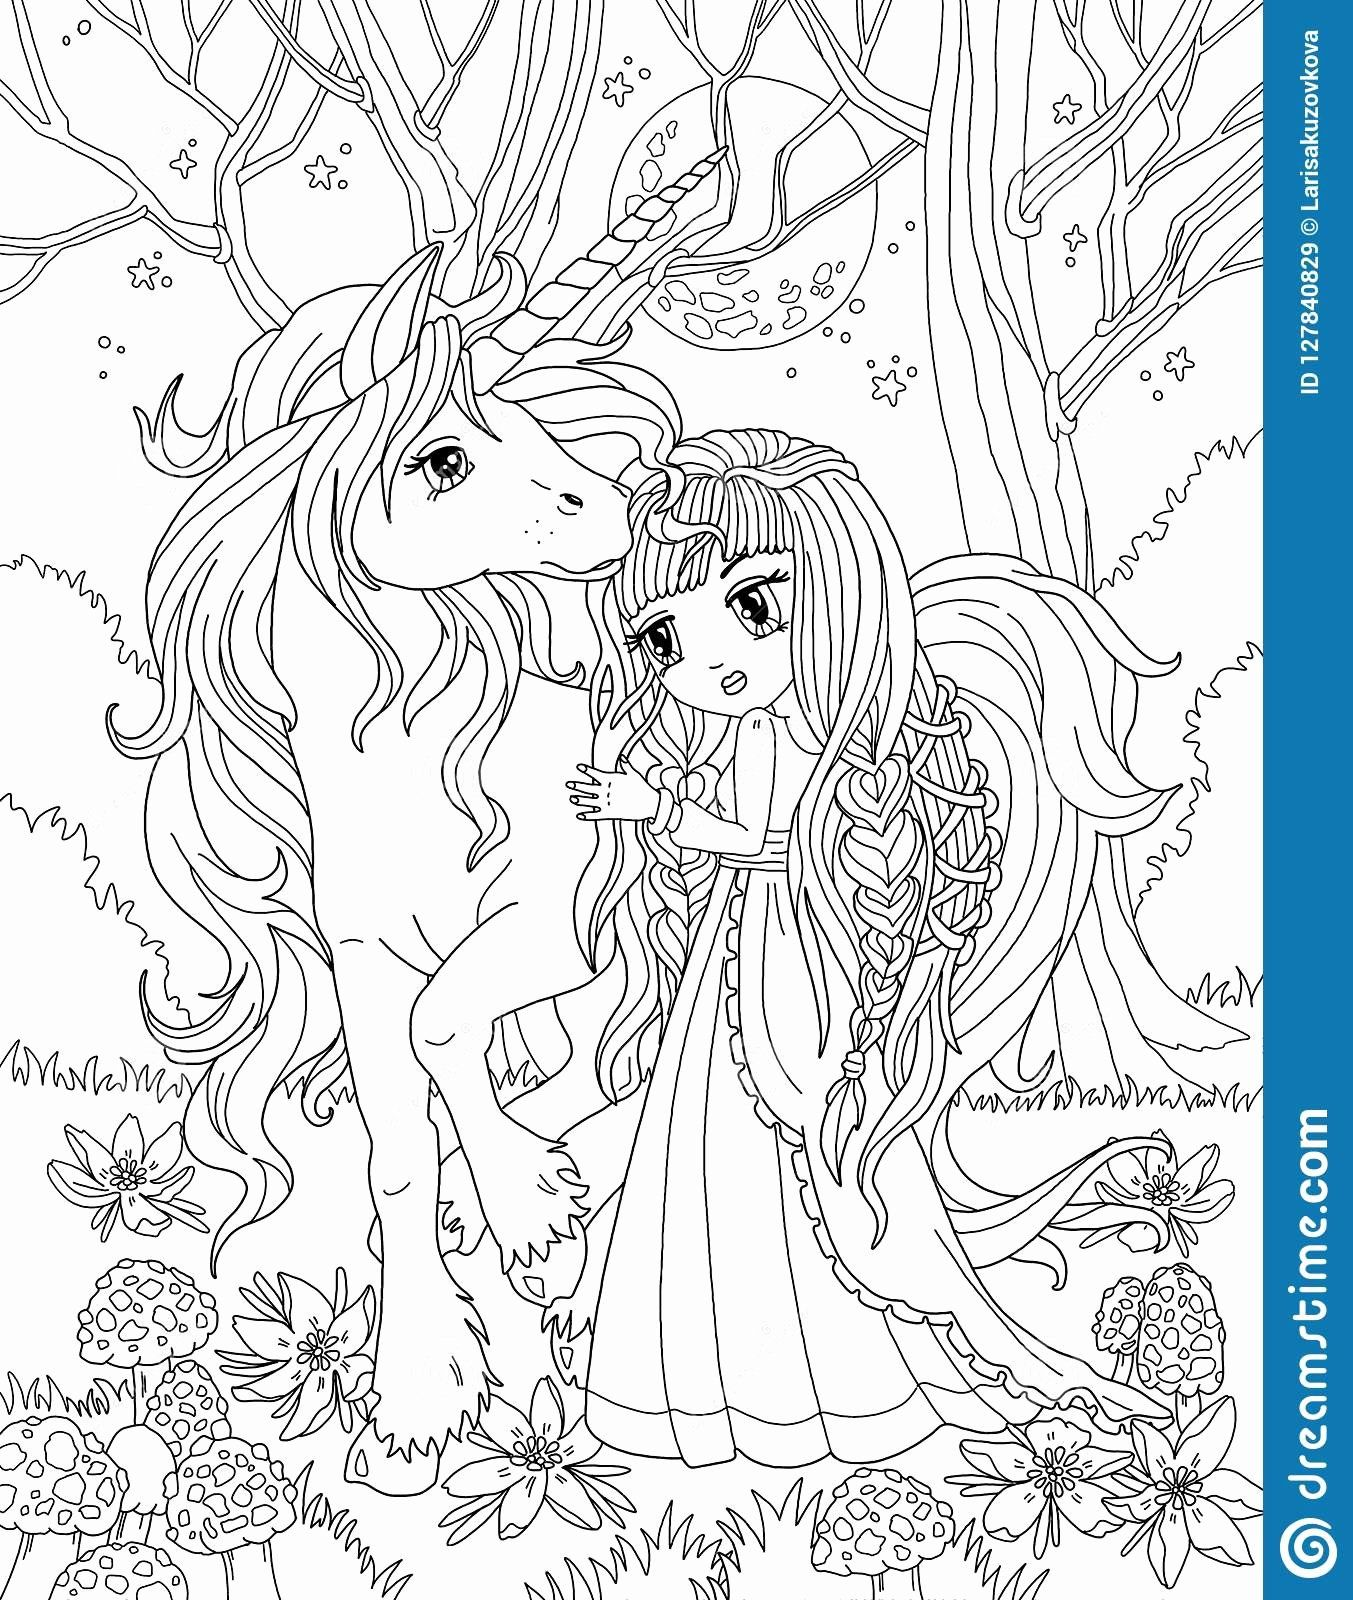 Princess Unicorn Coloring Pages Beautiful Princess Unicorn Coloring Page Album Sabadaphnecotta Unicorn Coloring Pages Princess Coloring Pages Princess Coloring